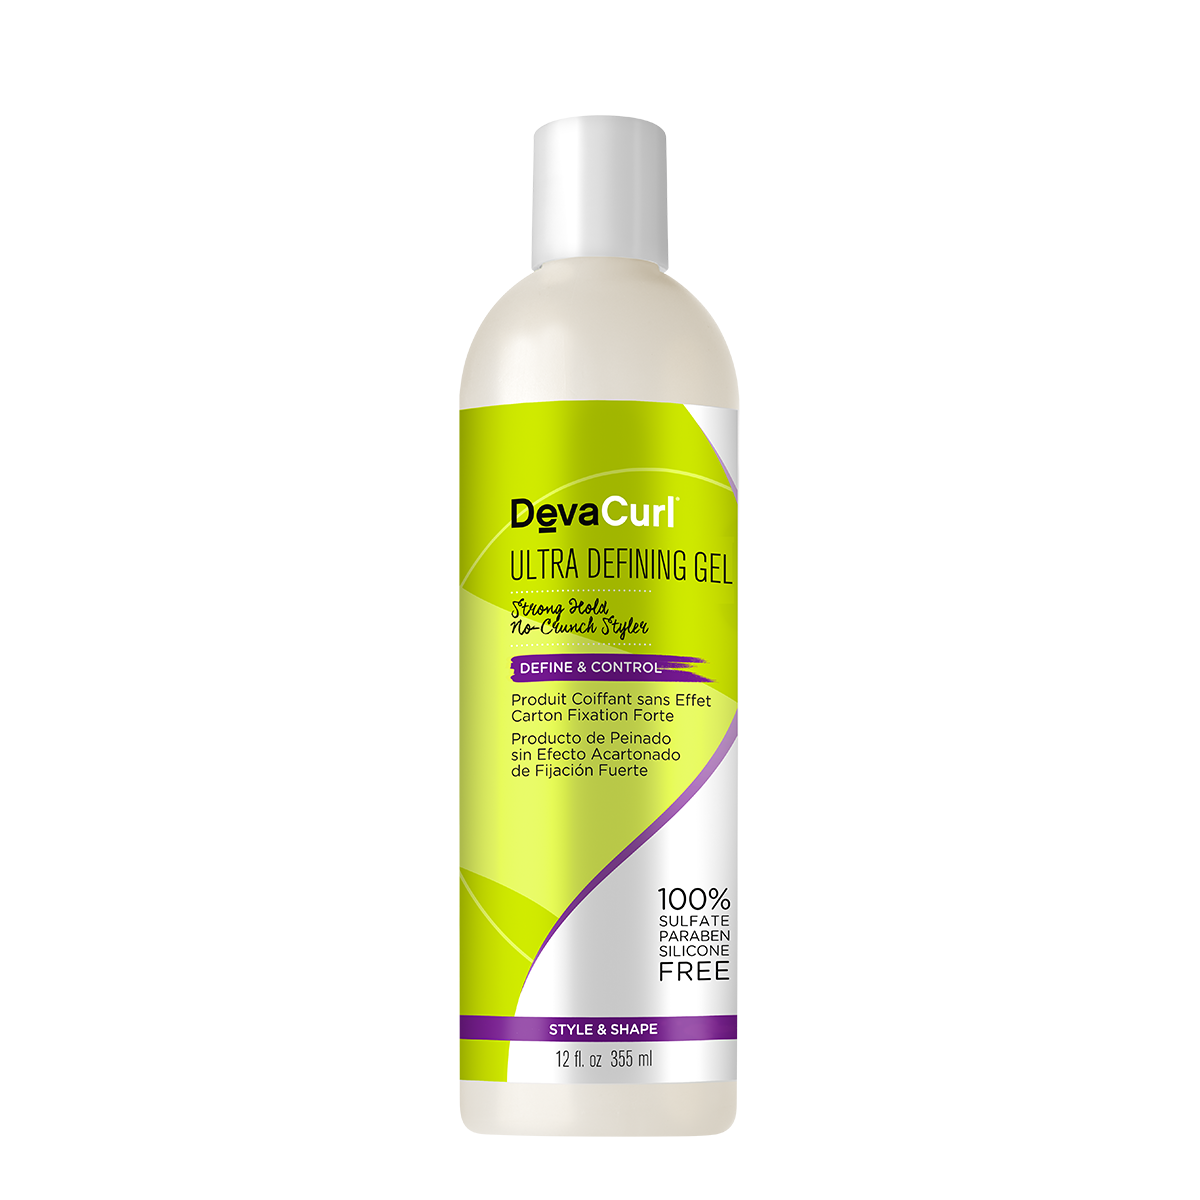 DevaCurl - Ultra Defining Gel